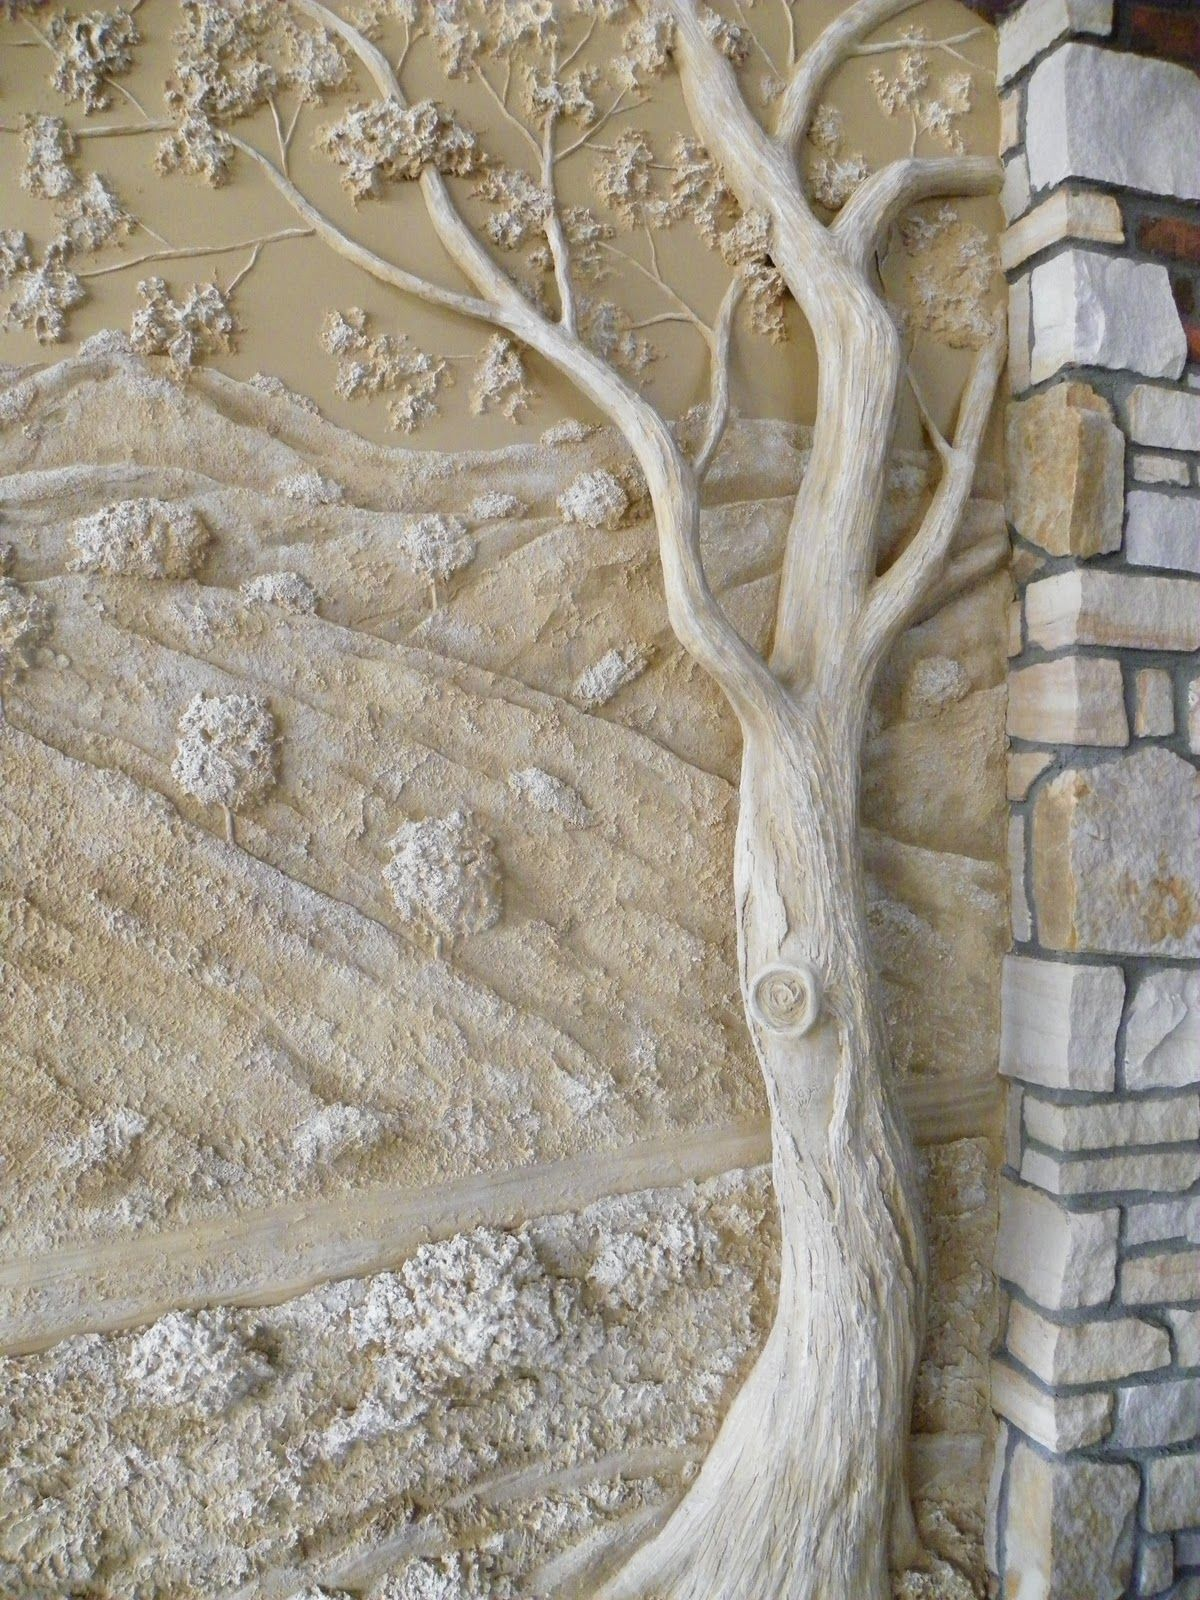 Inspiration Joint Compound Wall Sculpture Fabulous Plaster Wall Art Plaster Art Diy Wall Art